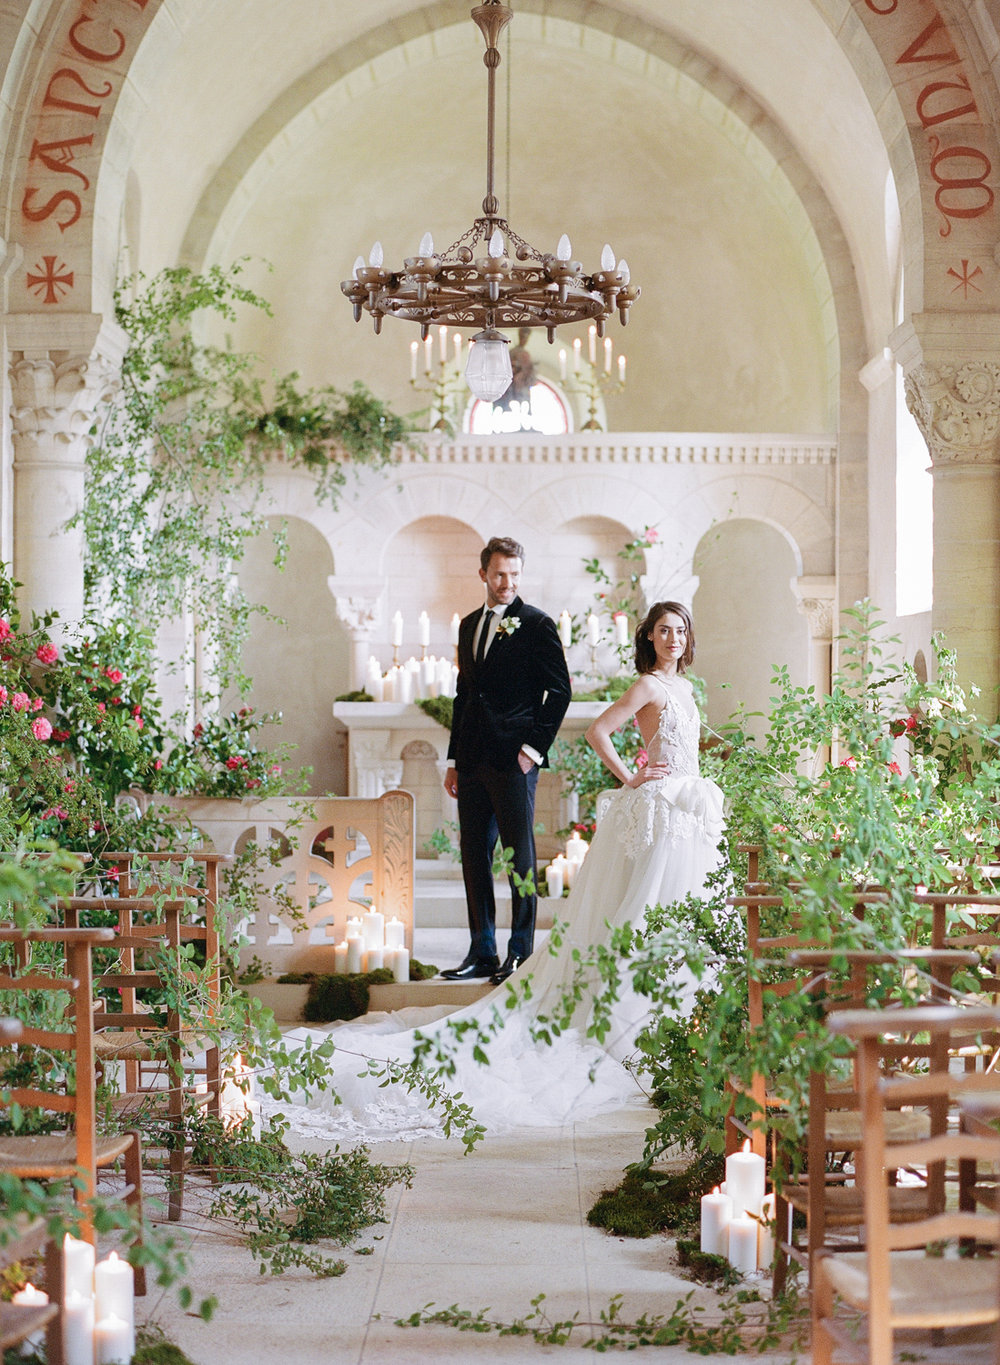 Styled wedding shoot at Chateau de Varennes; Sylvie Gil Photography